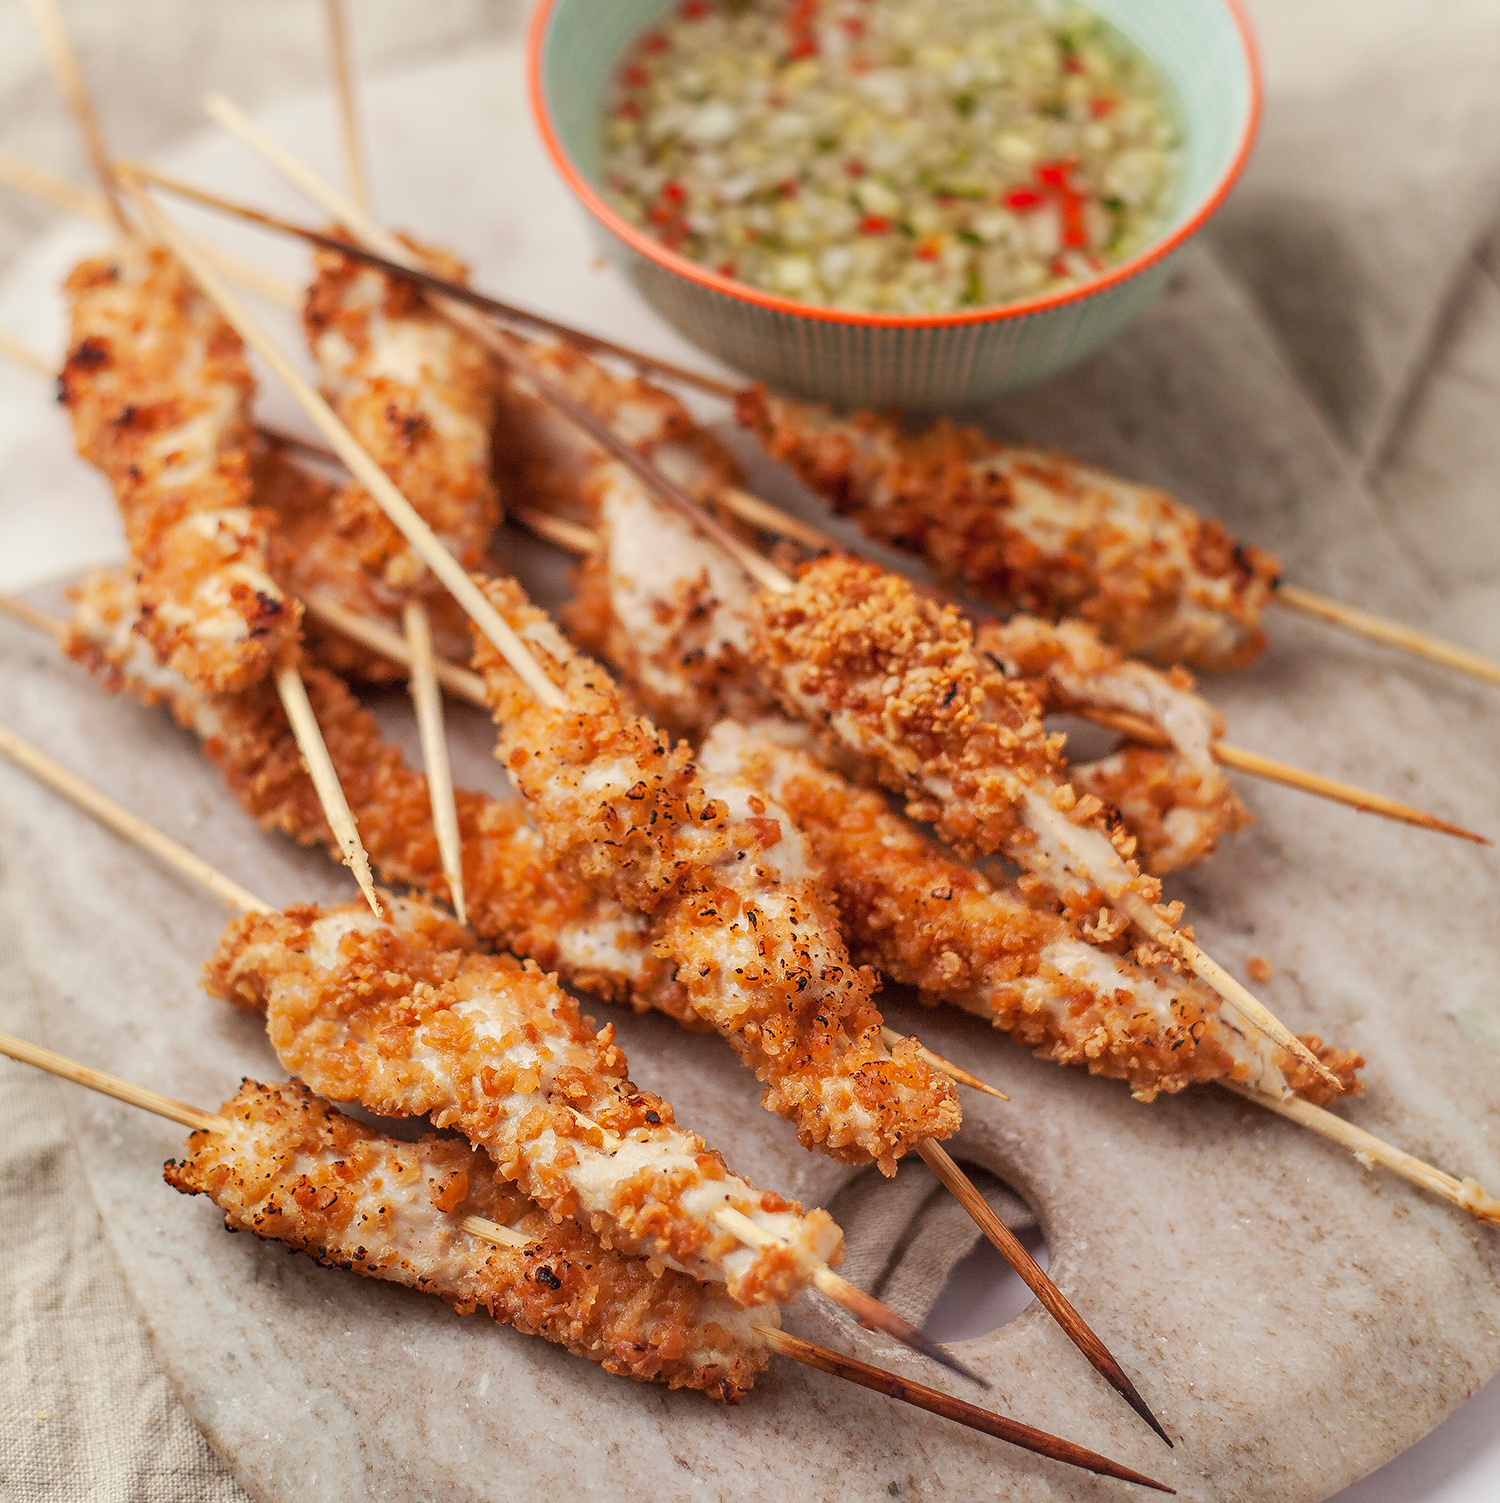 Peanut chicken skewers and chilli dip